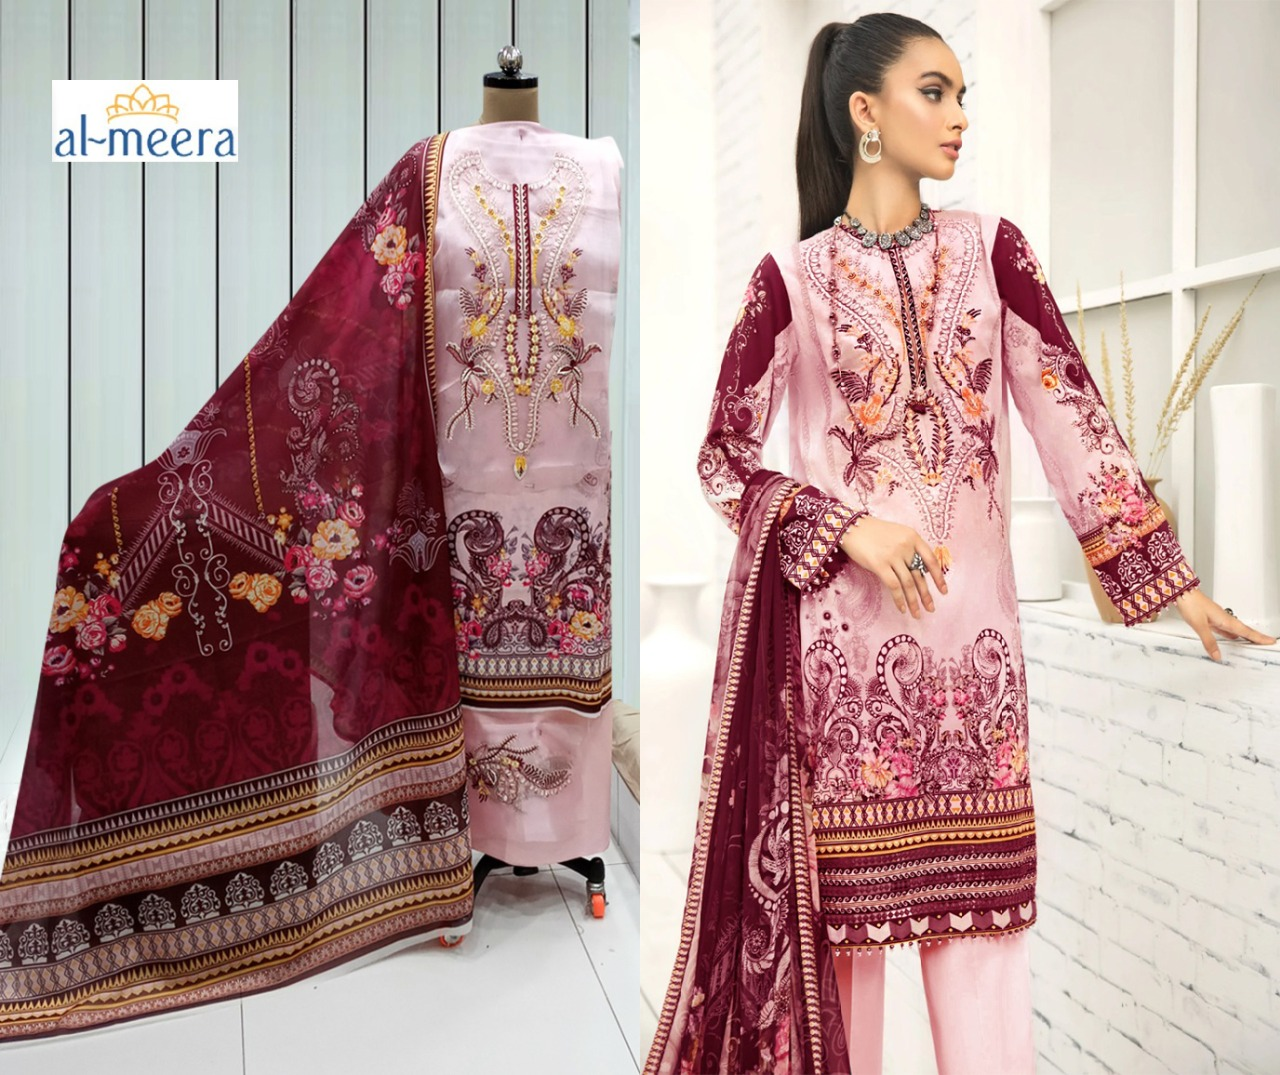 Al Meera 1209 Crimson Designer Luxury Lawn With Embroidery Work Suits Wholesale